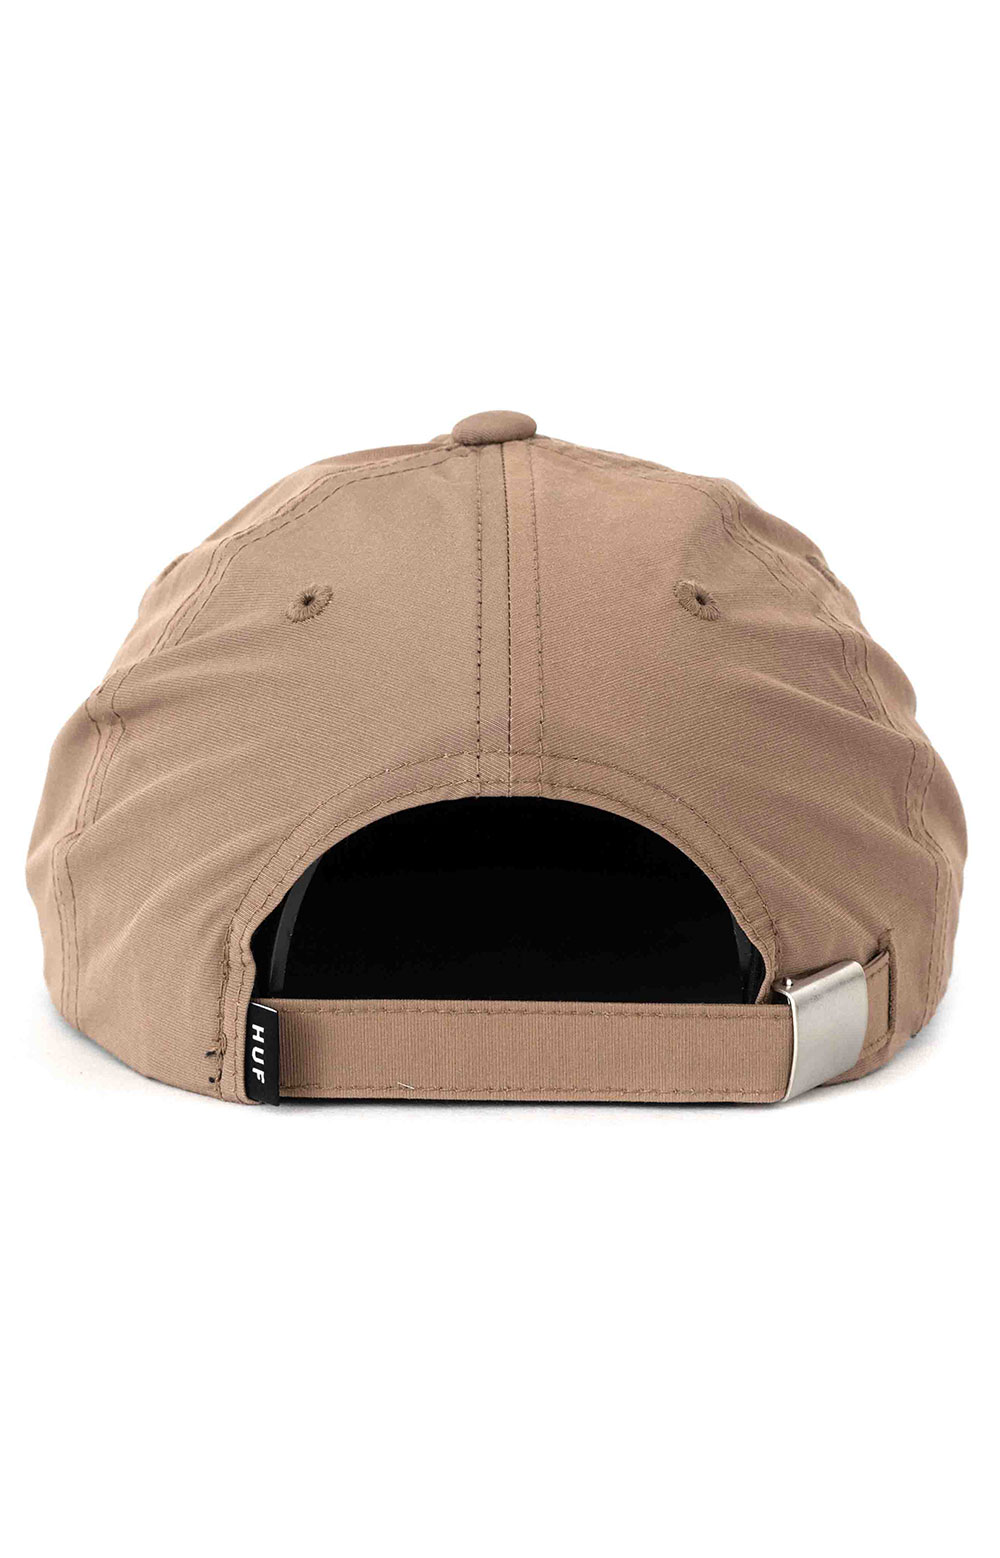 Pure 6 Panel Hat - Toffee 3